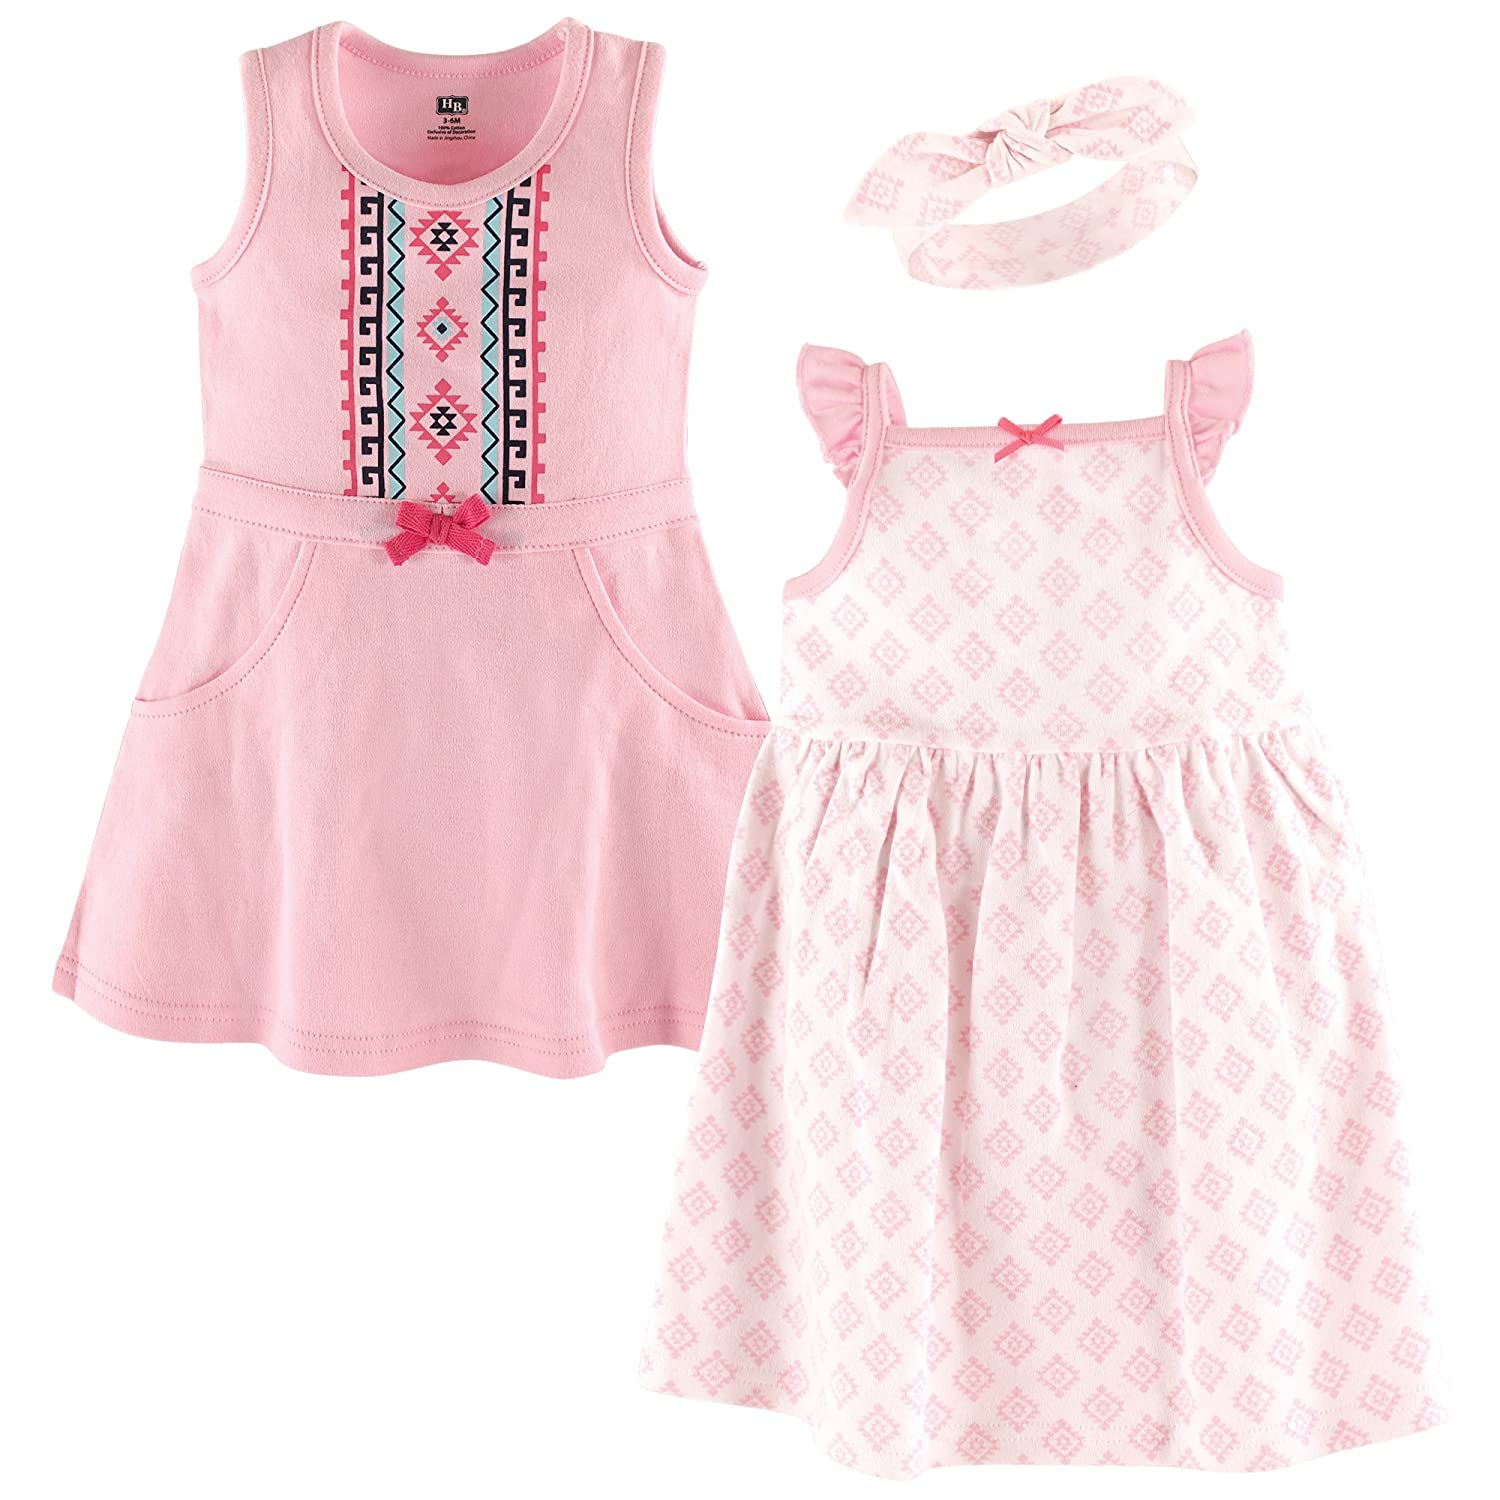 Hudson Baby Girls' 3 Piece Dress and Headband Set,